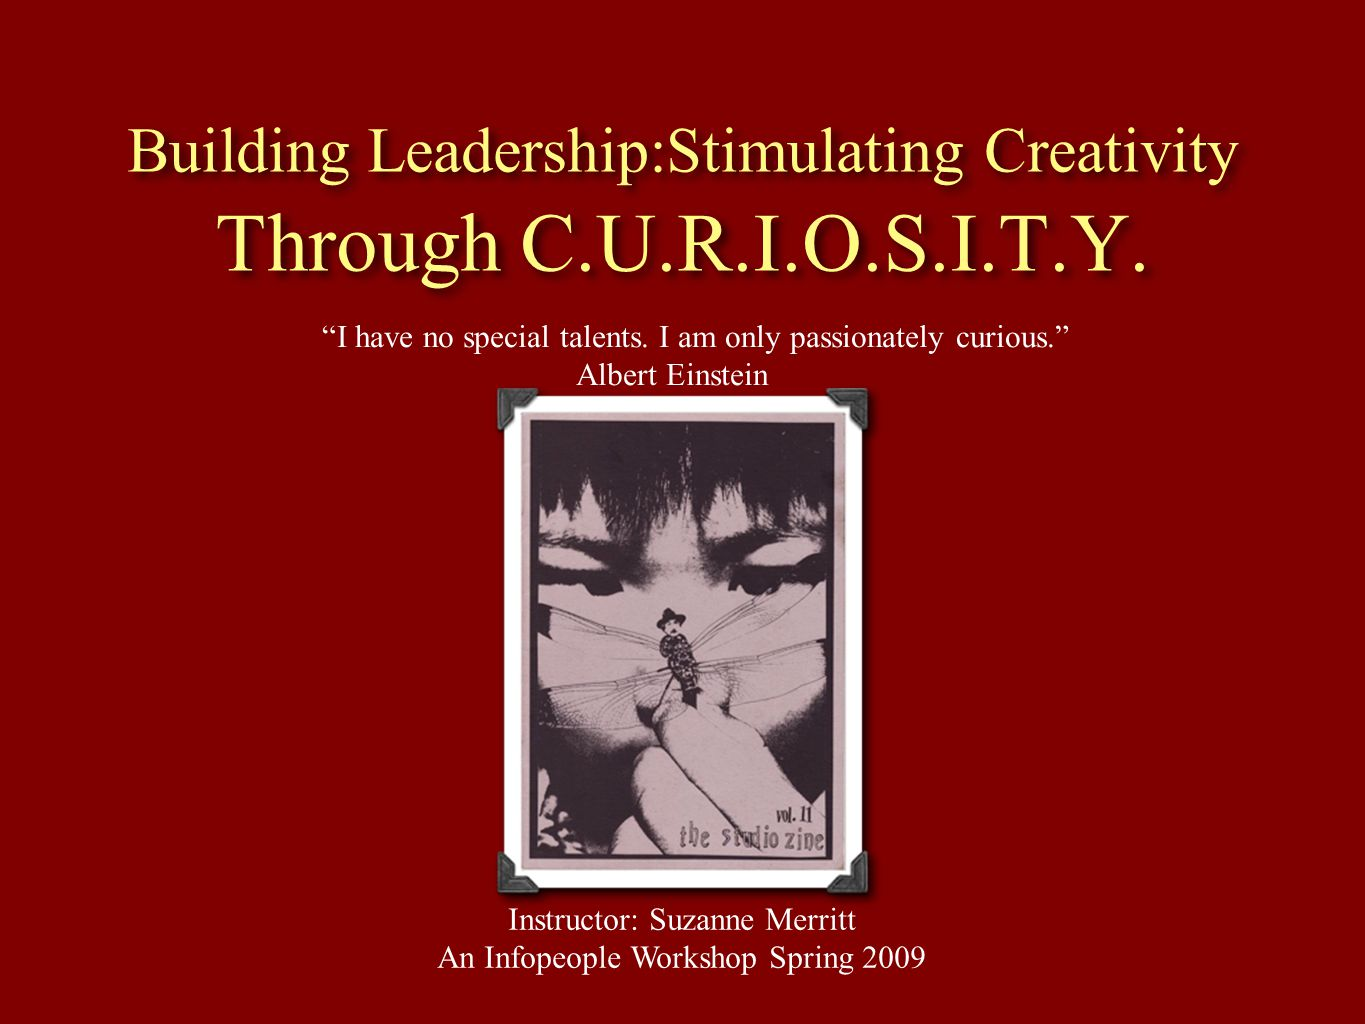 Building Leadership:Stimulating Creativity Through C.U.R.I.O.S.I.T.Y.